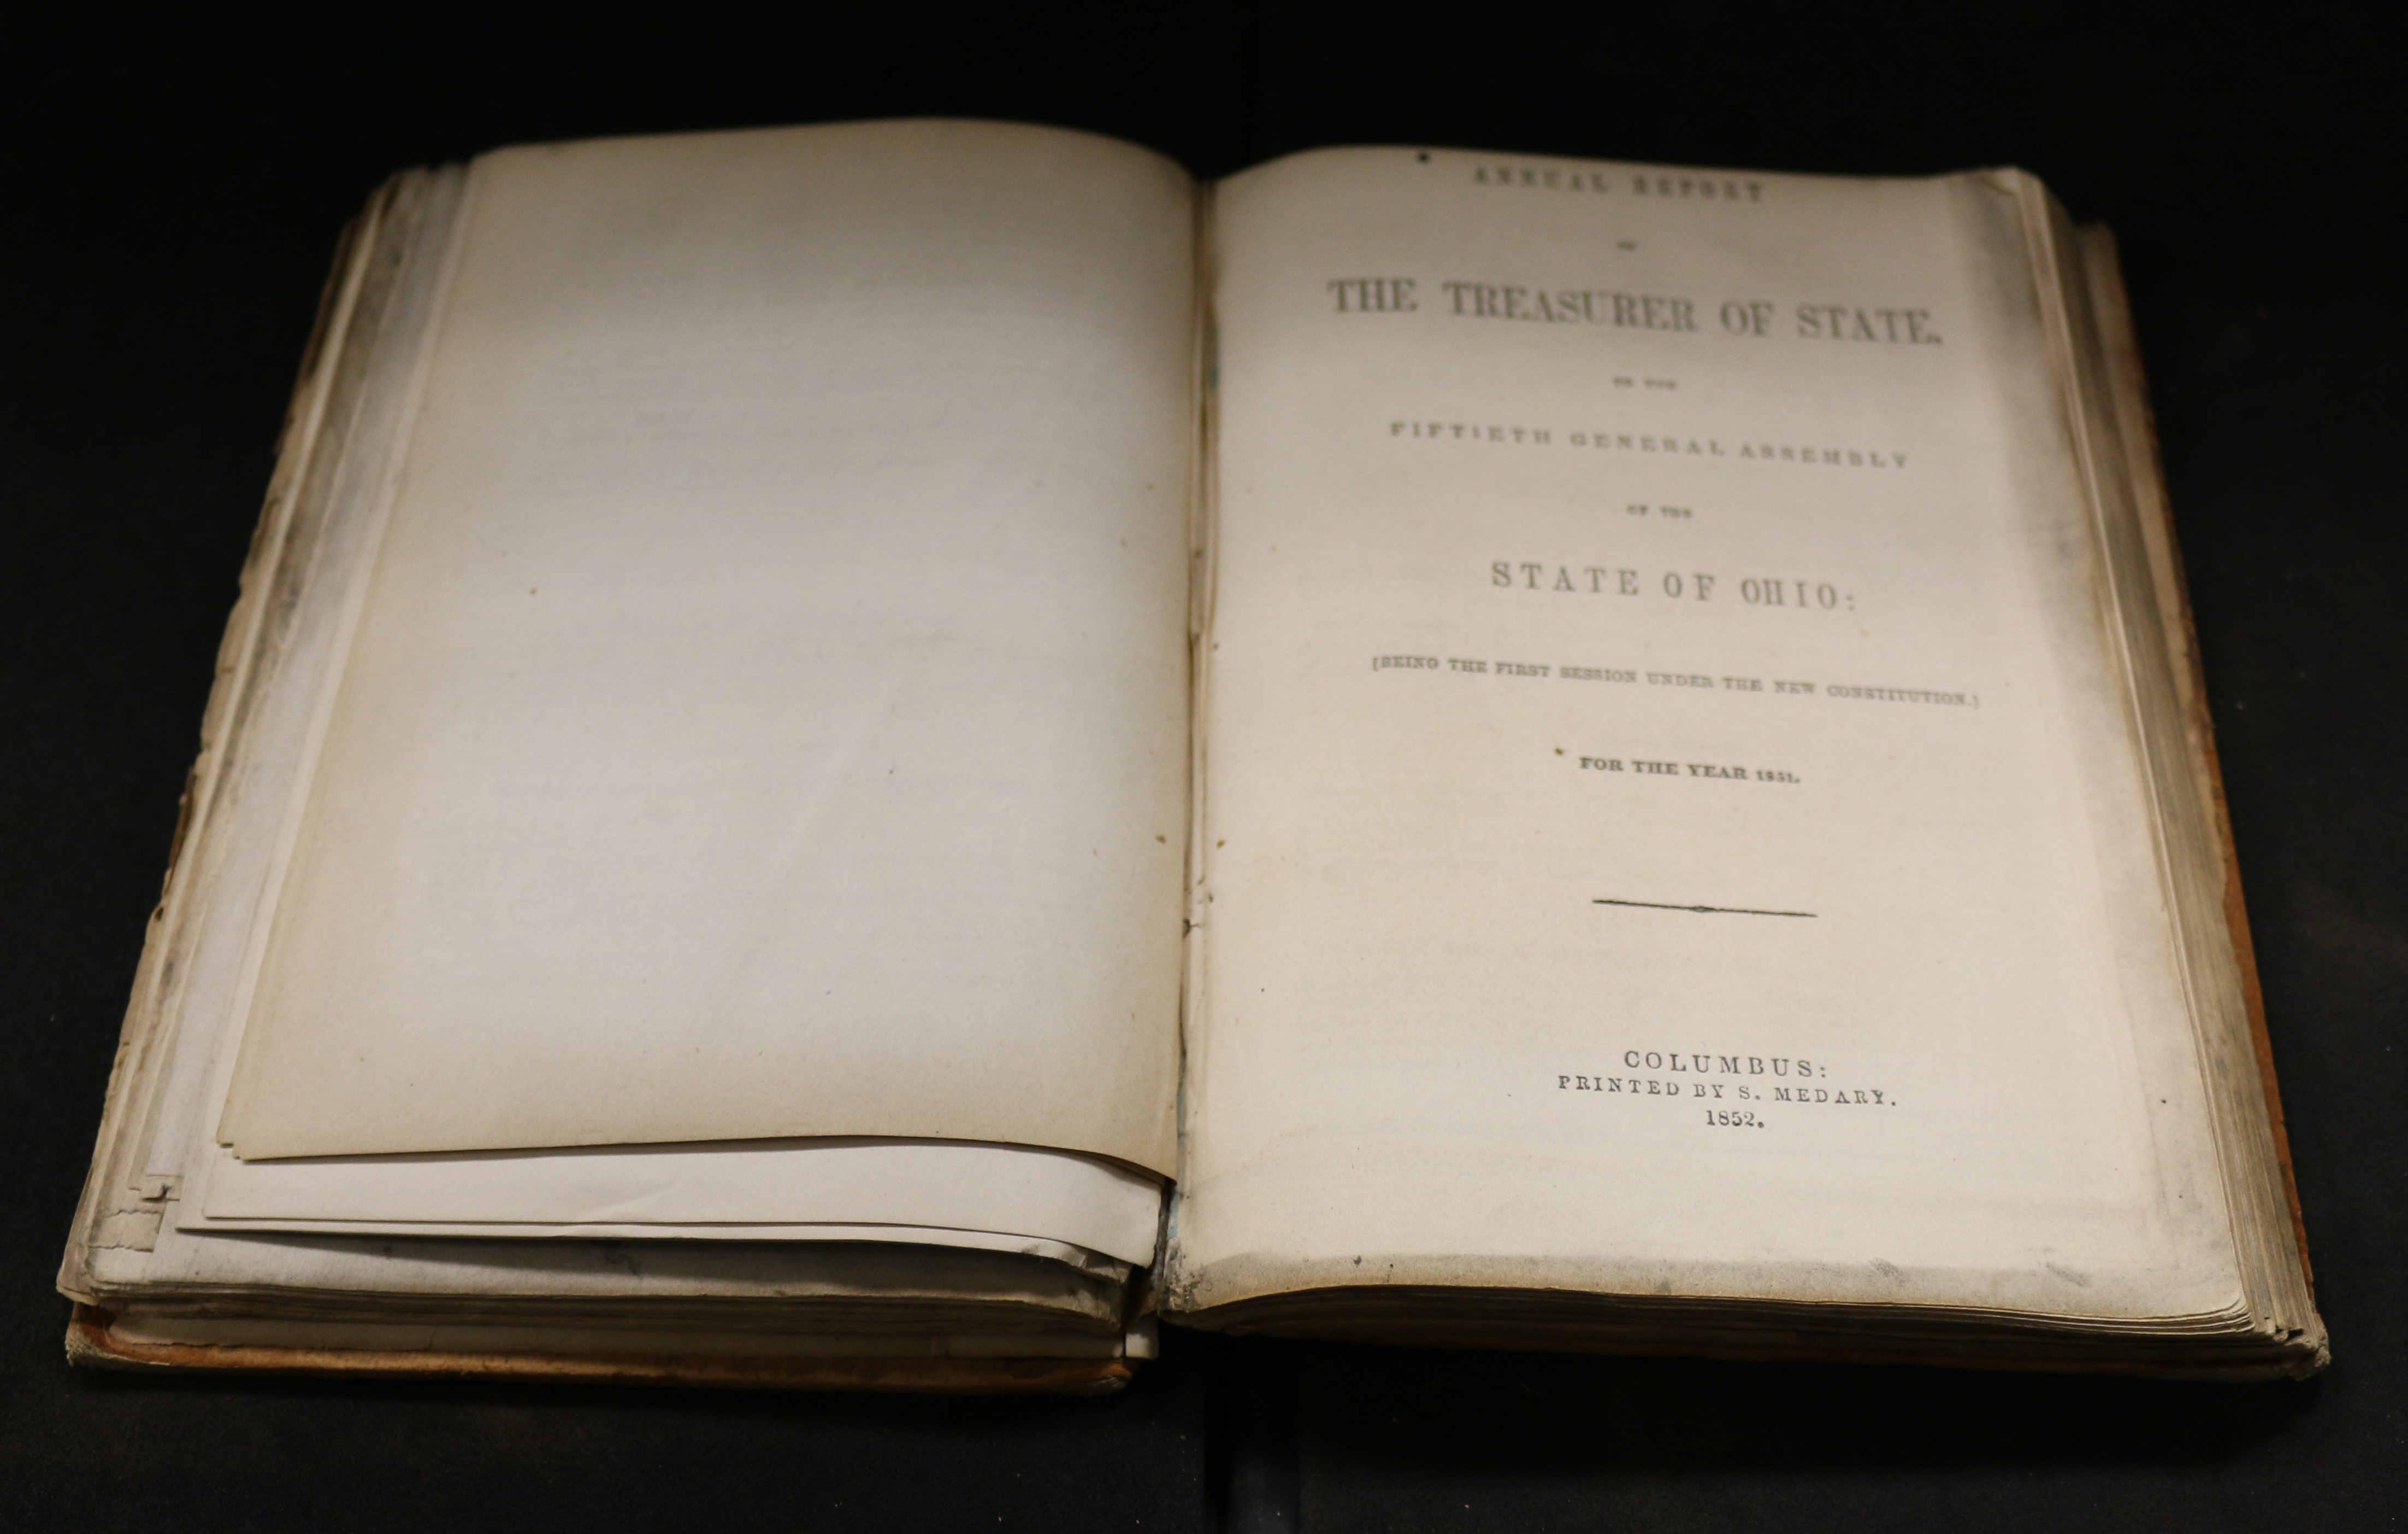 Photo of Ohio Treasurer Annual Report from 1851